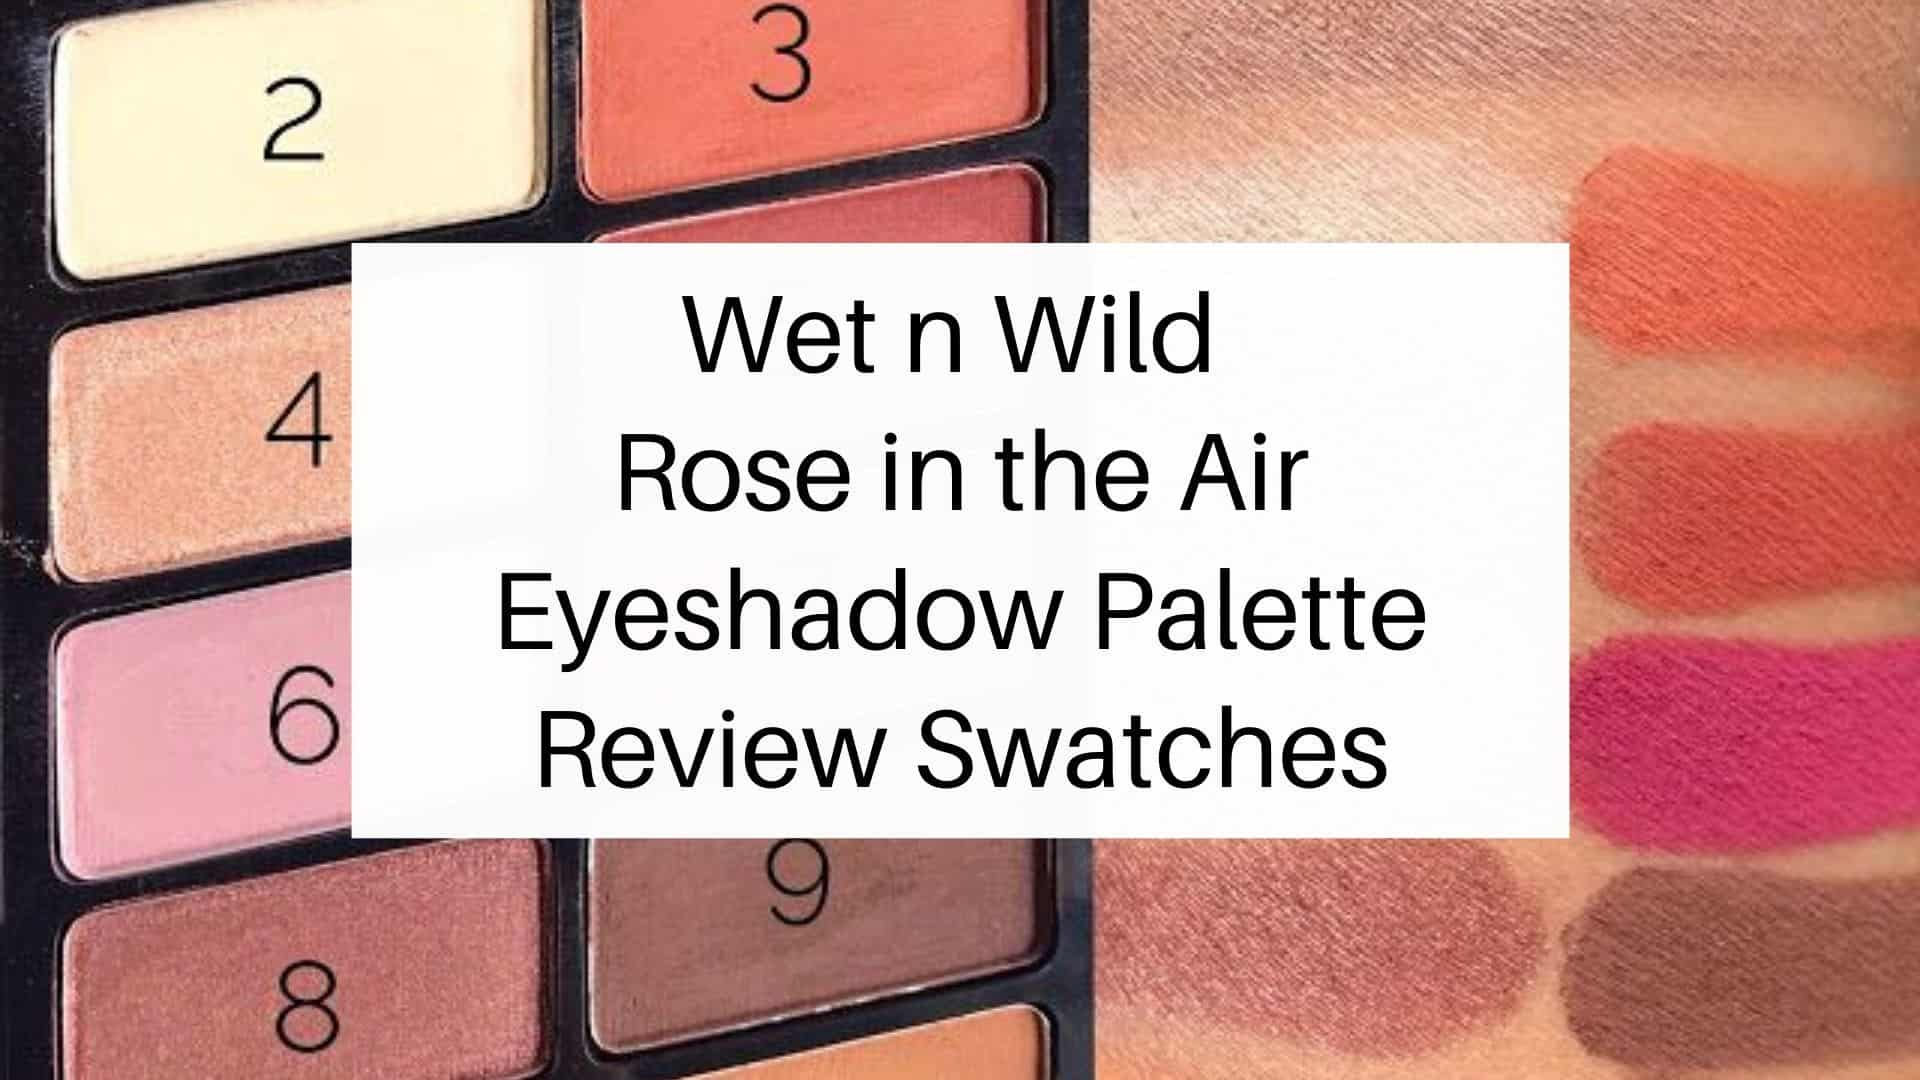 Wet n Wild Rose in the Air Eyeshadow Palette Review Swatches